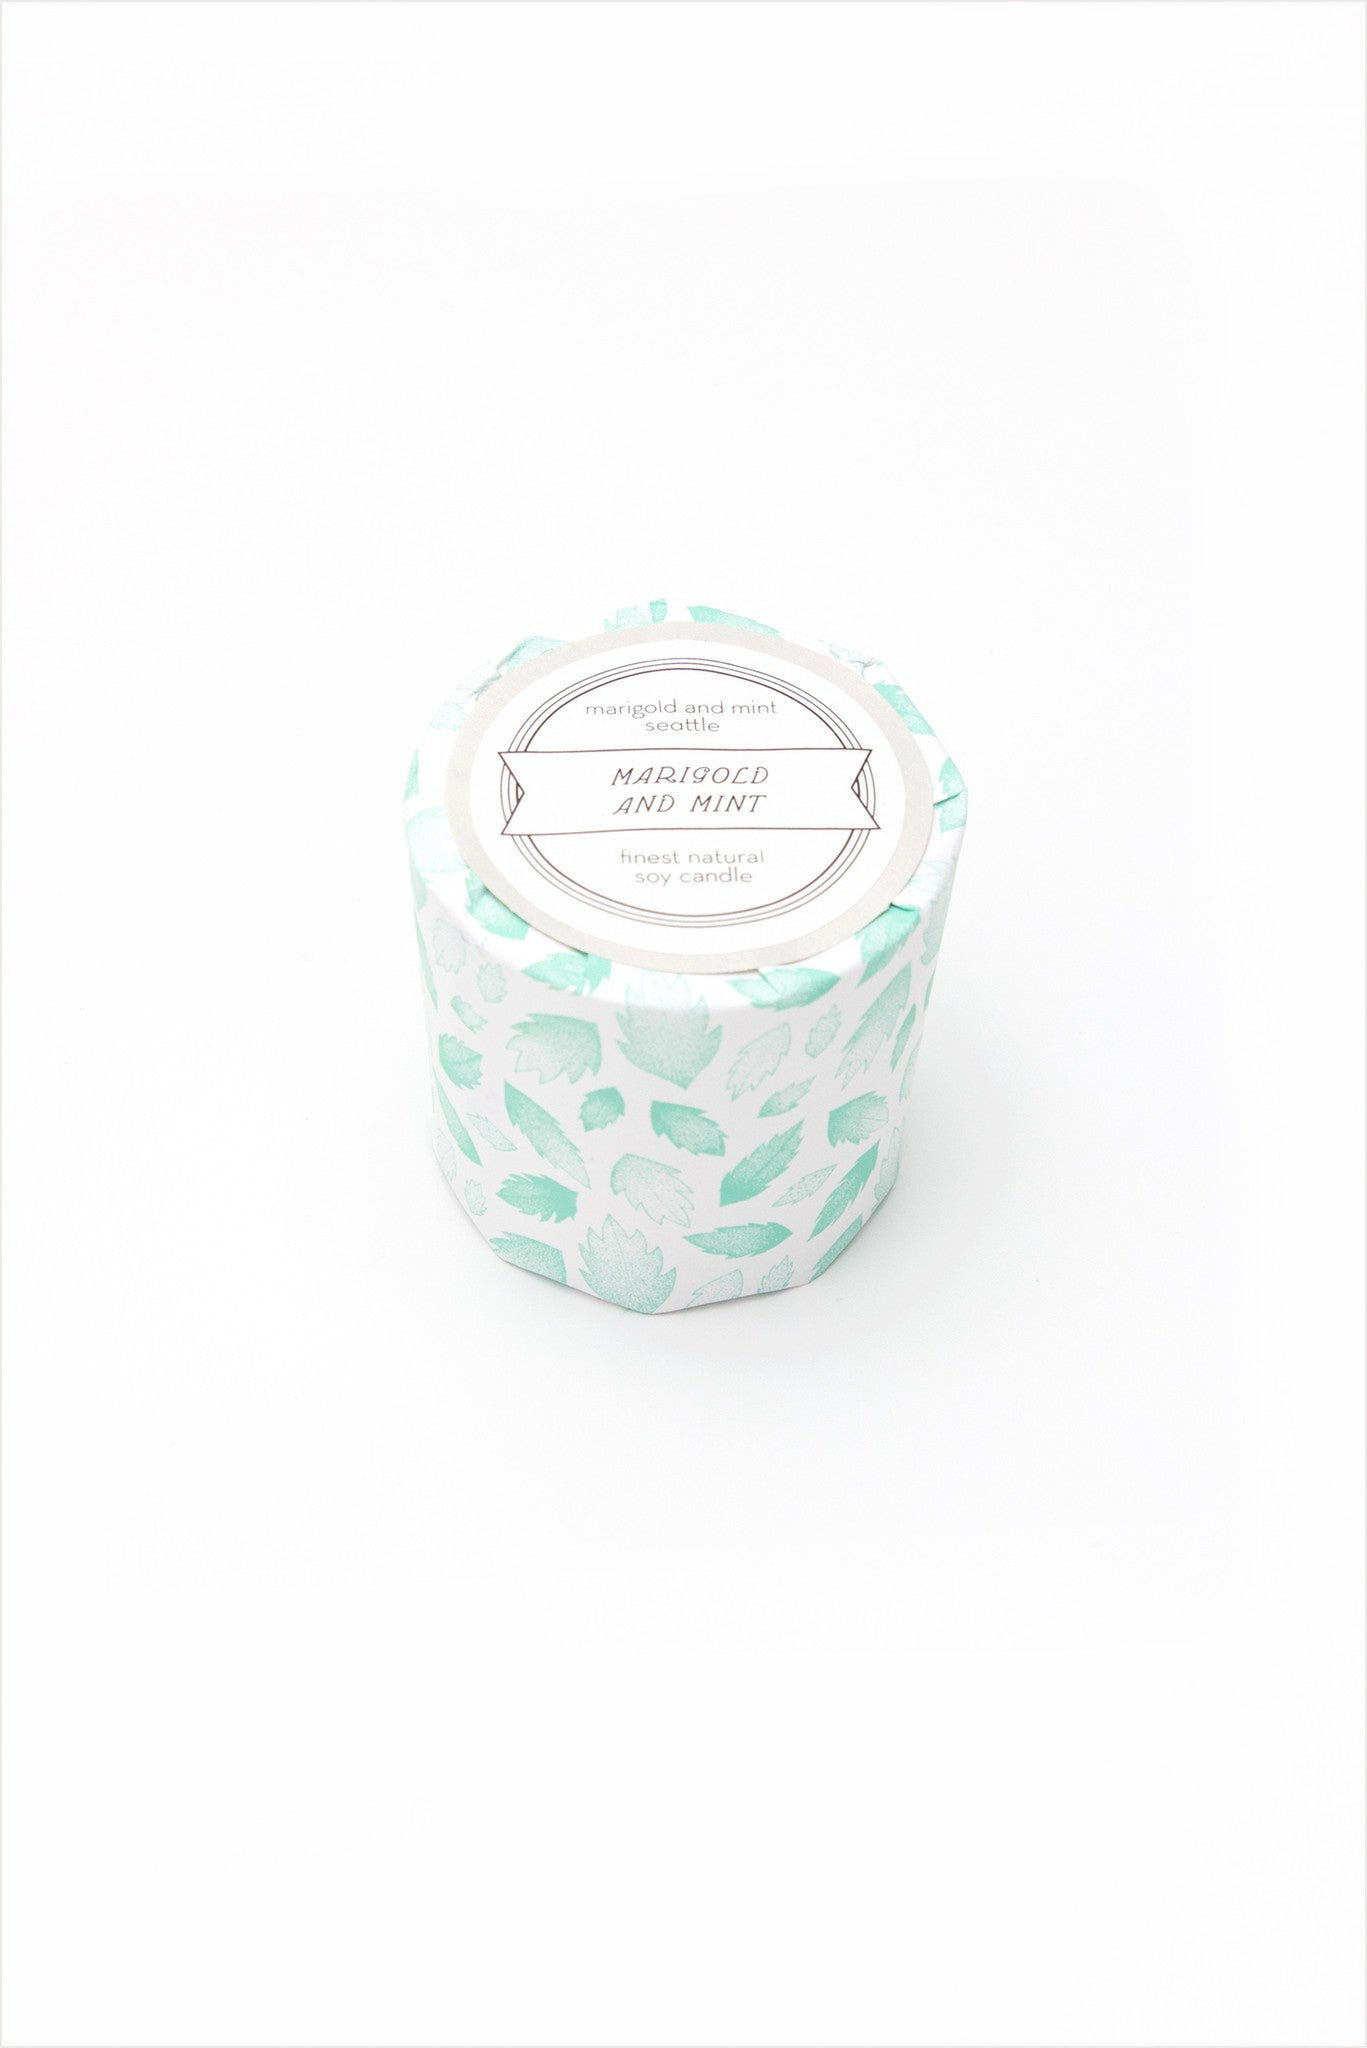 Marigold And Mint Candle Signature